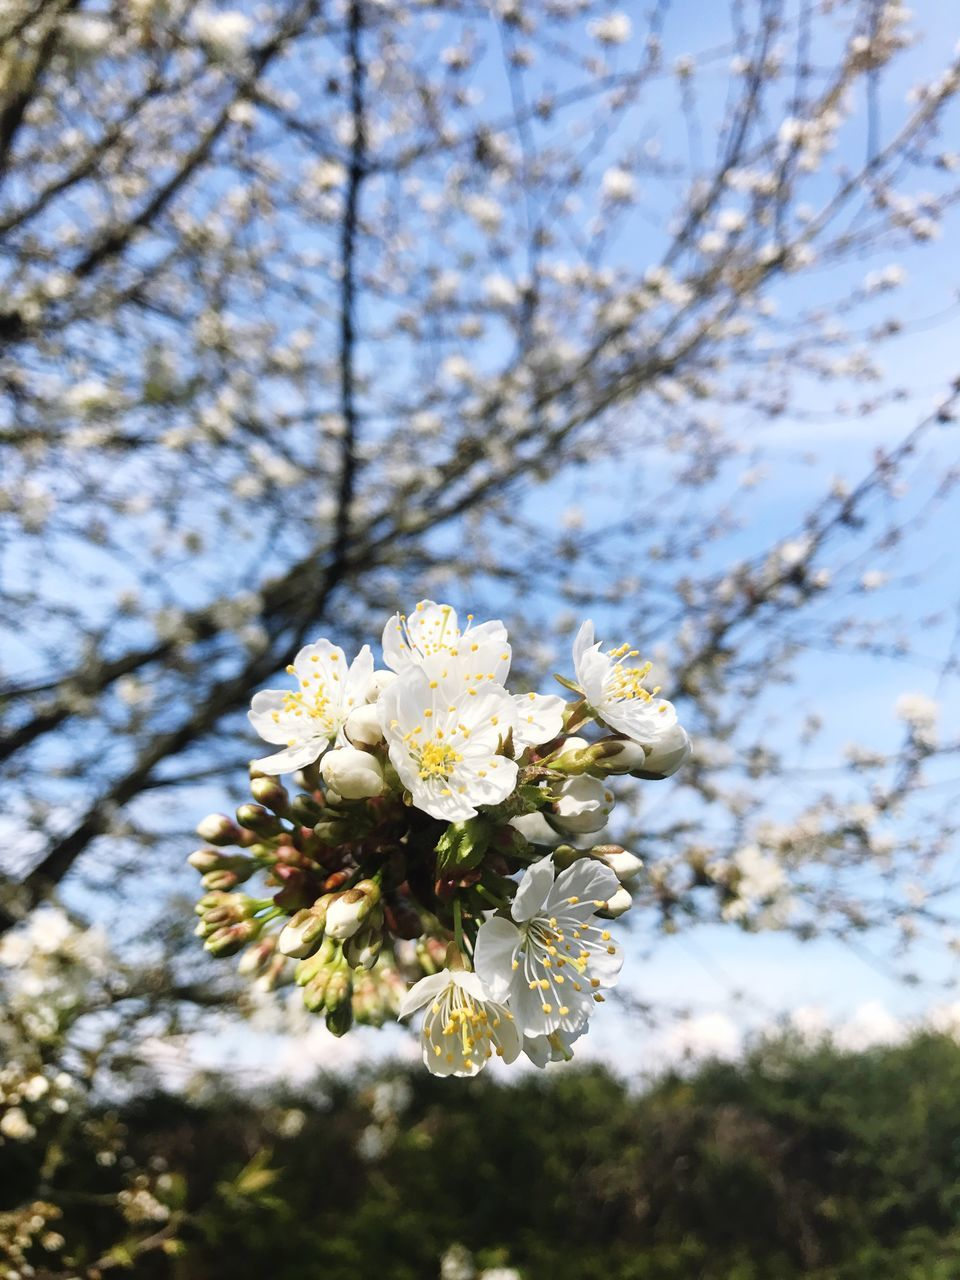 flower, blossom, fragility, tree, apple blossom, cherry blossom, branch, growth, springtime, white color, nature, apple tree, beauty in nature, orchard, cherry tree, freshness, botany, almond tree, white, petal, no people, flower head, day, twig, plum blossom, low angle view, spring, focus on foreground, stamen, close-up, outdoors, blooming, sky